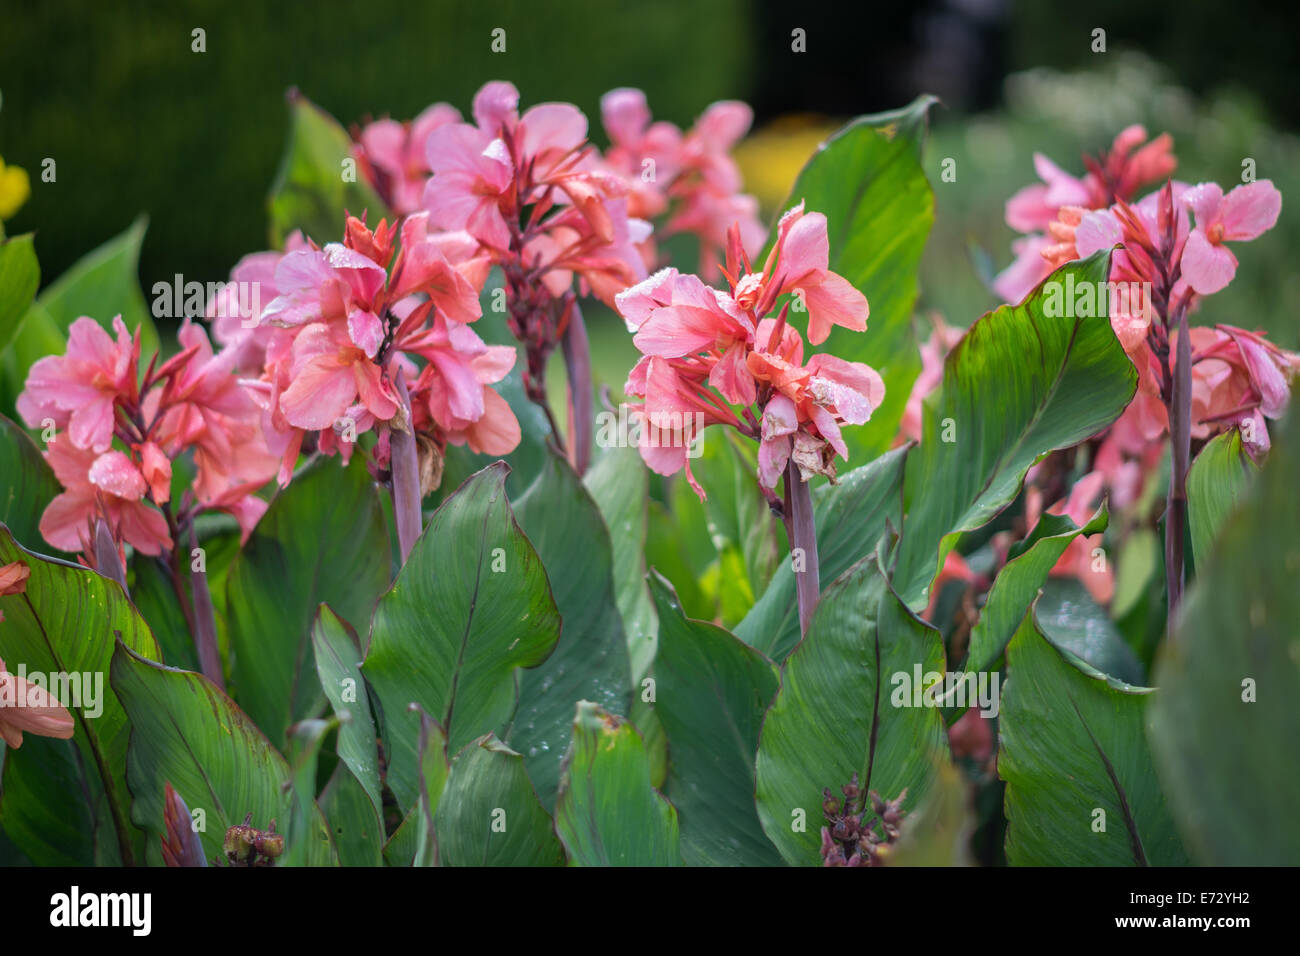 Pink Canna Lily Stock Photos Pink Canna Lily Stock Images Alamy